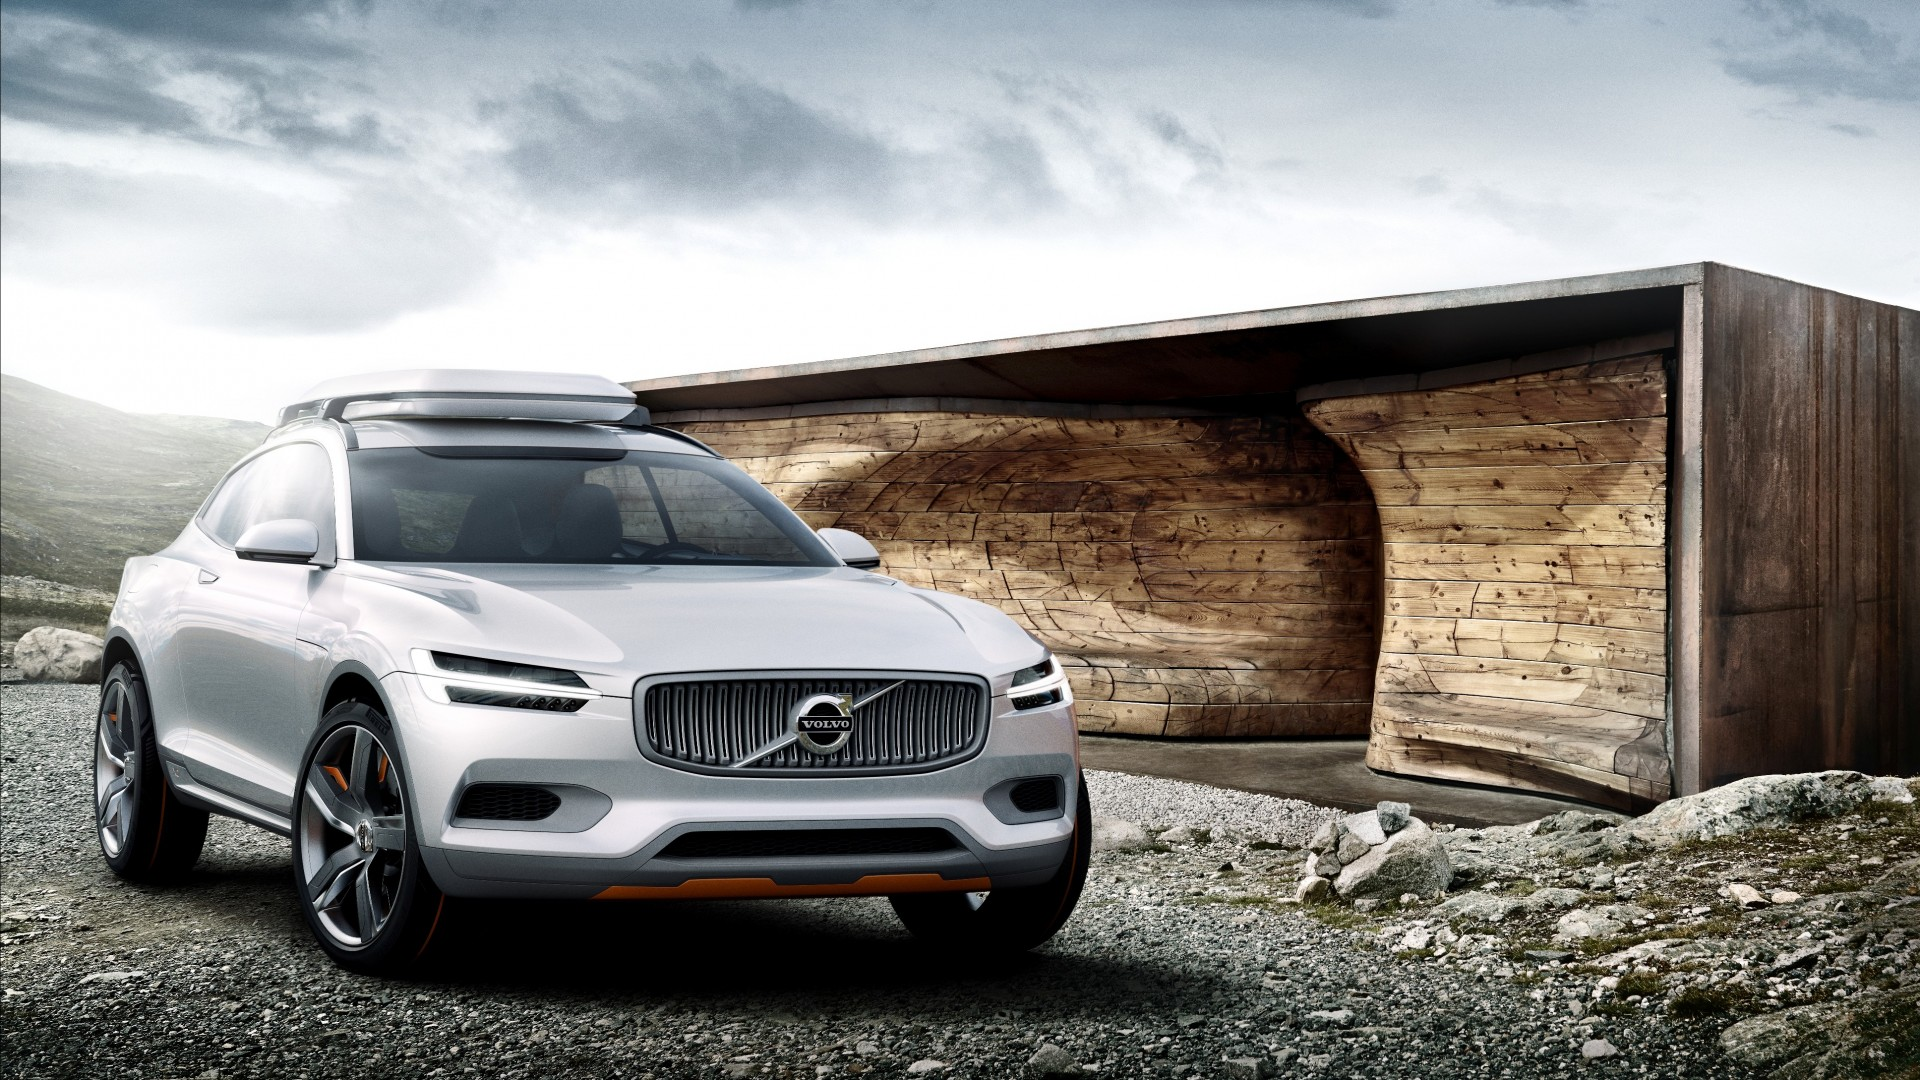 wallpaper volvo xc90 concept crossover volvo suv hybrid luxury cars review test drive. Black Bedroom Furniture Sets. Home Design Ideas